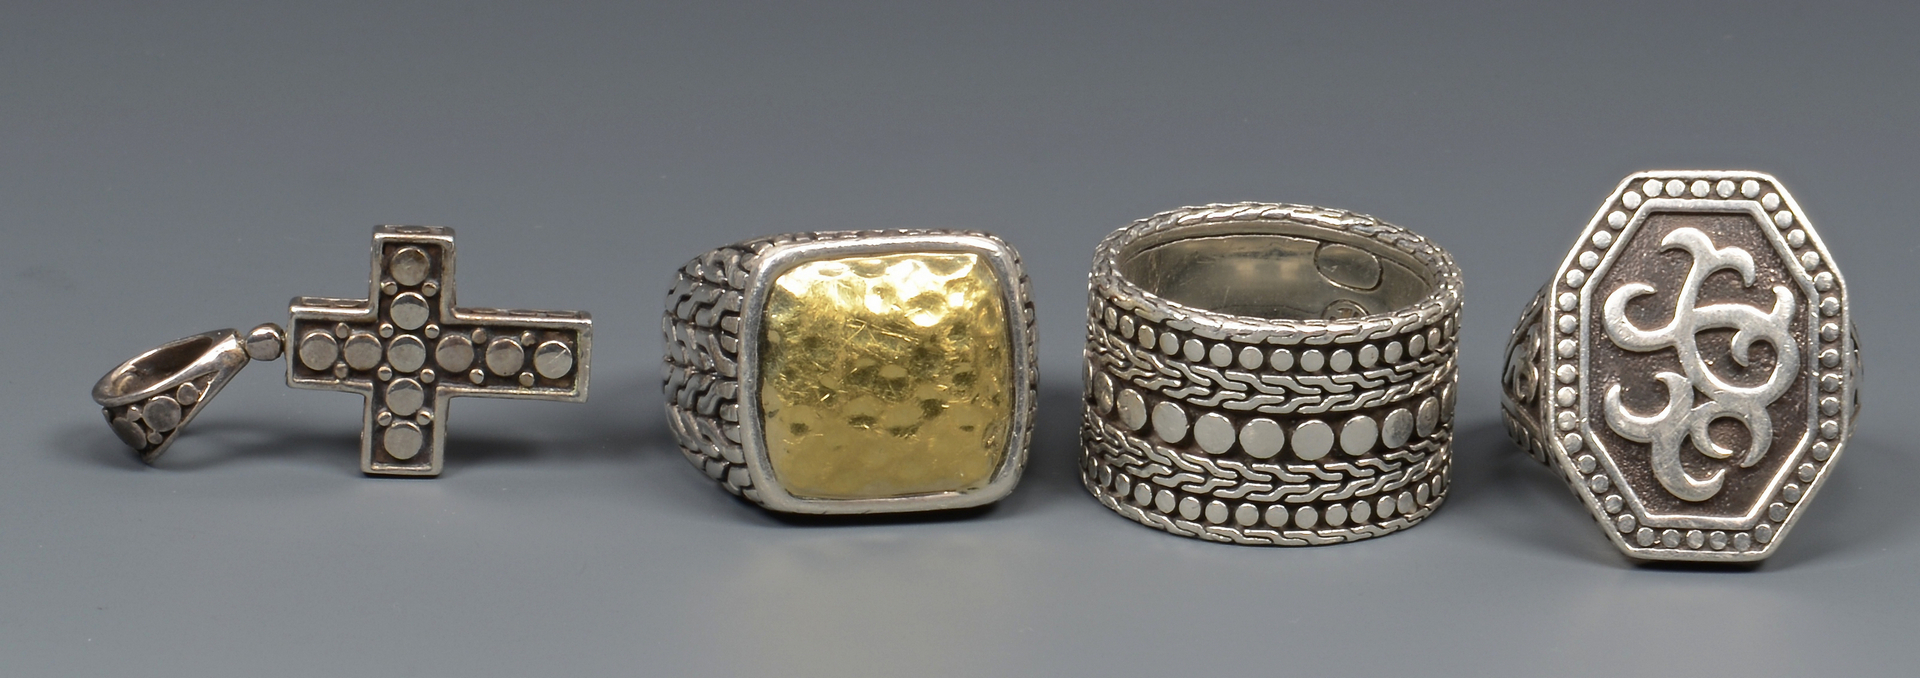 Lot 797: Group of John Hardy Men's Jewelry